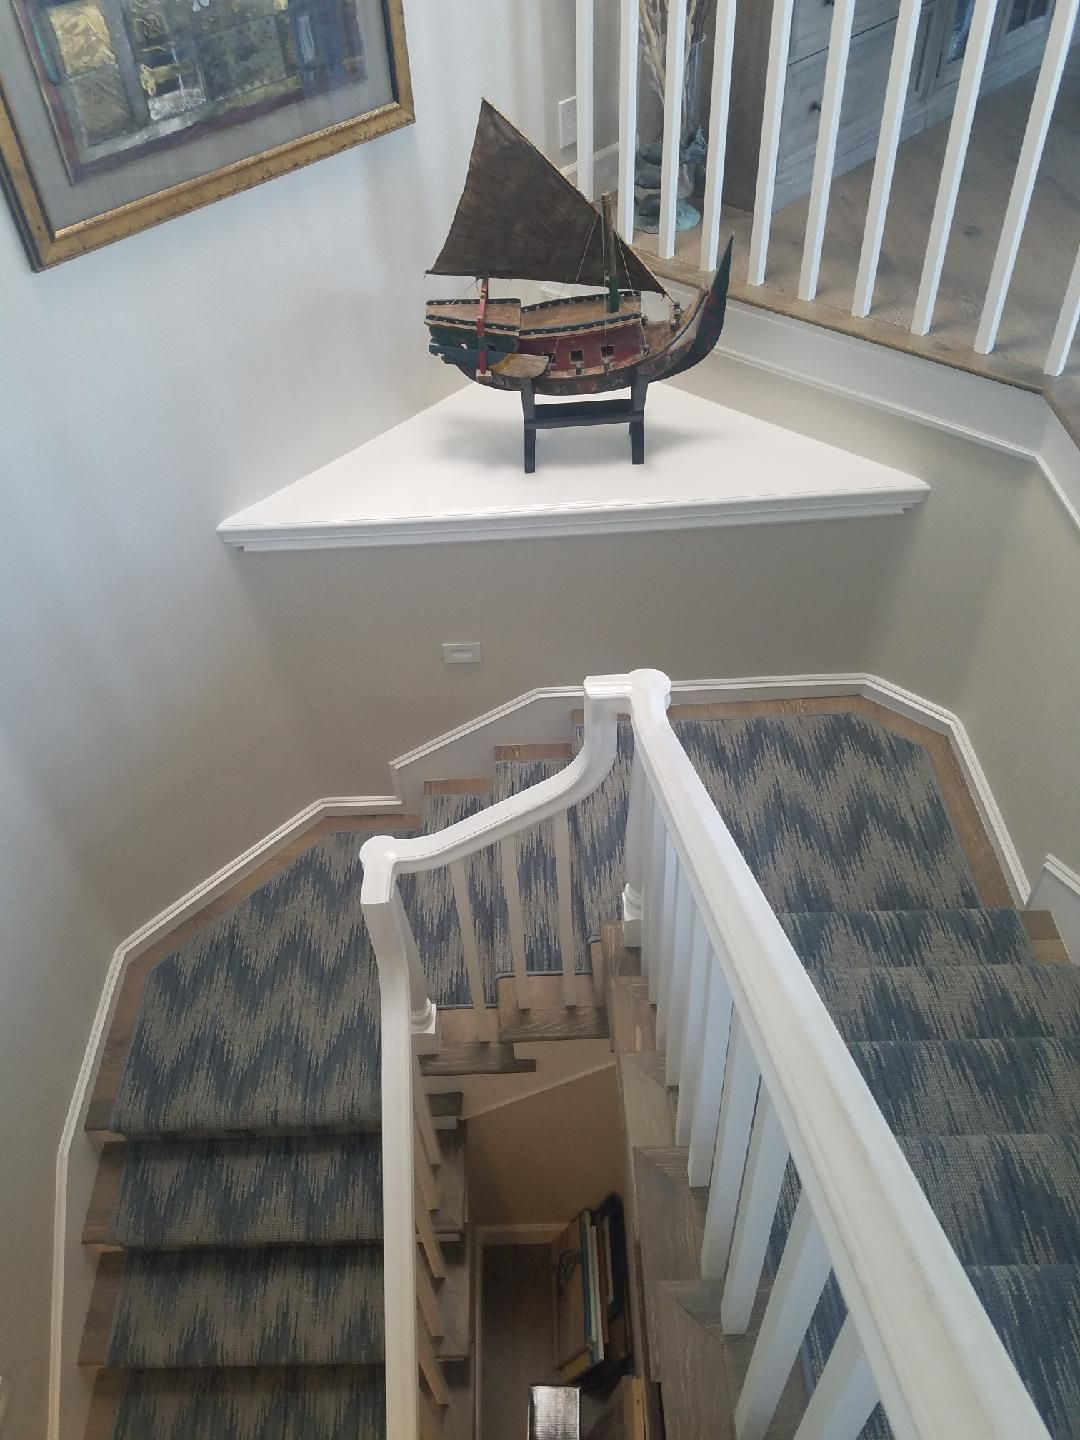 Karastan New Zealand wool carpet fabricated into a stair